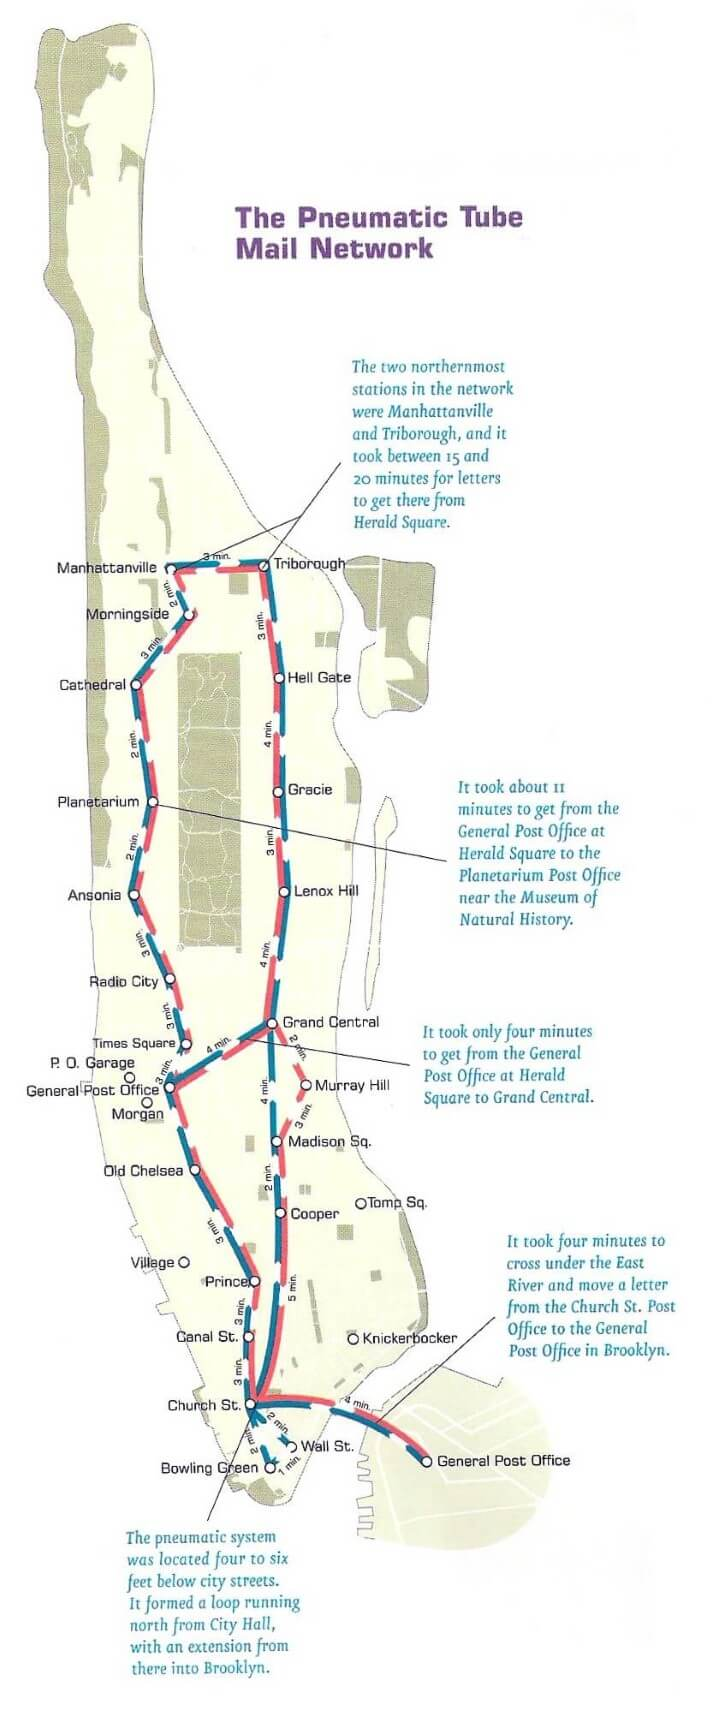 New York's Pneumatic Tube Mail Network Map